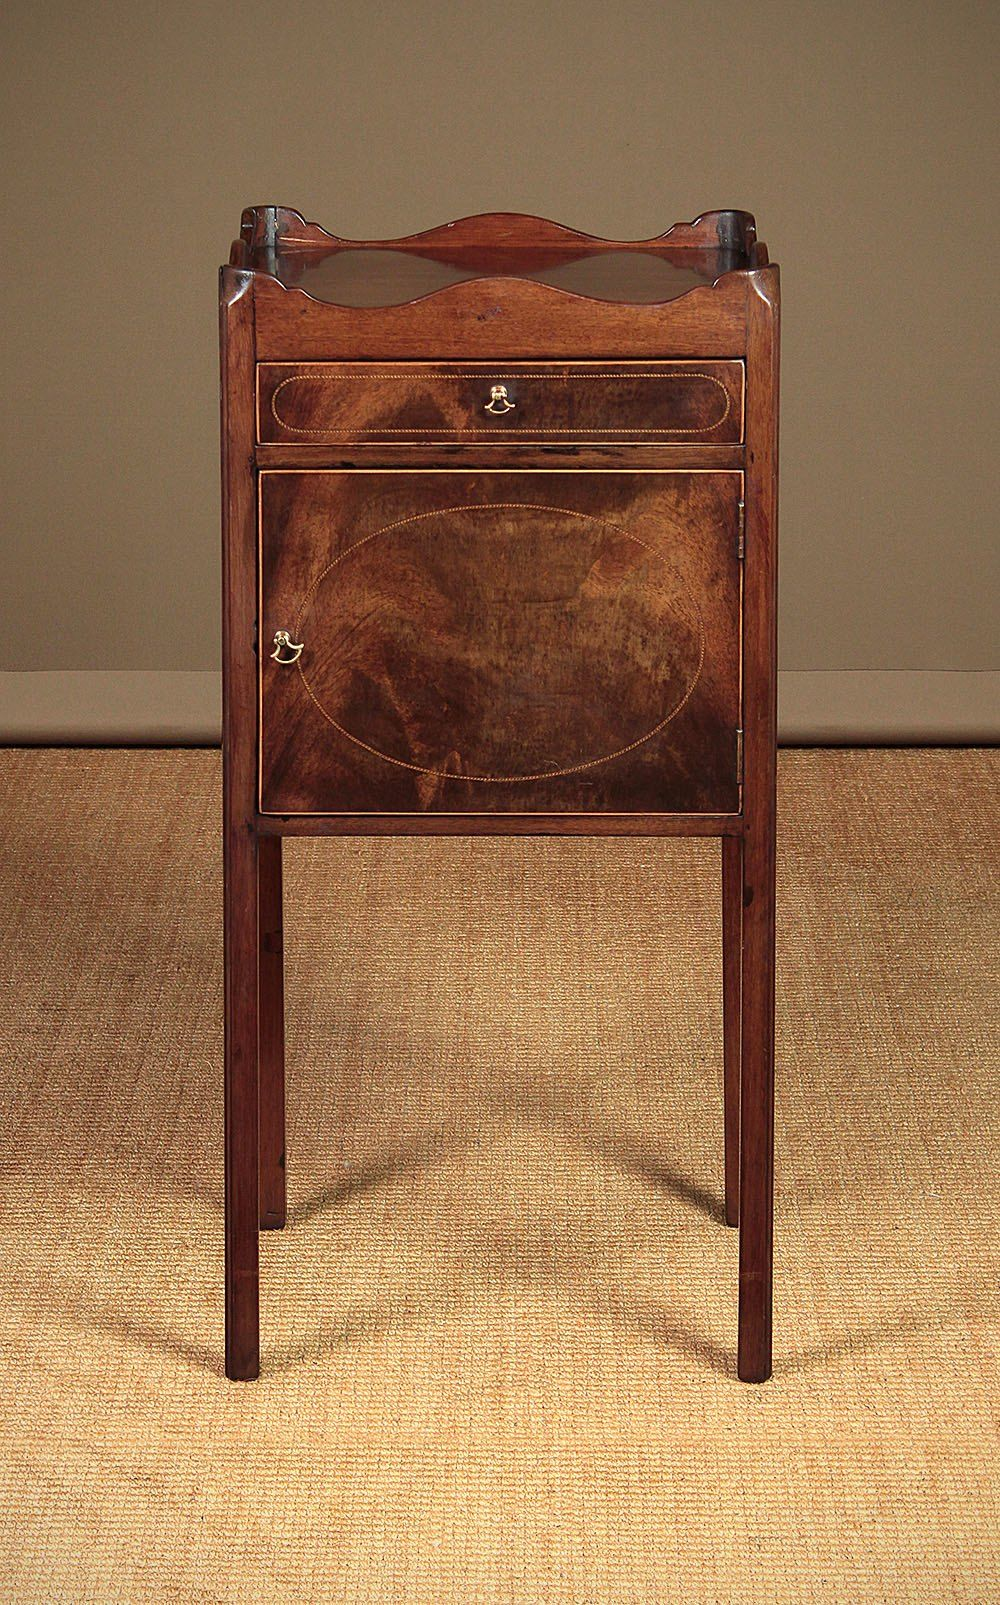 George Iii Mahogany Bedside Table Or Night Stand Bedside Table